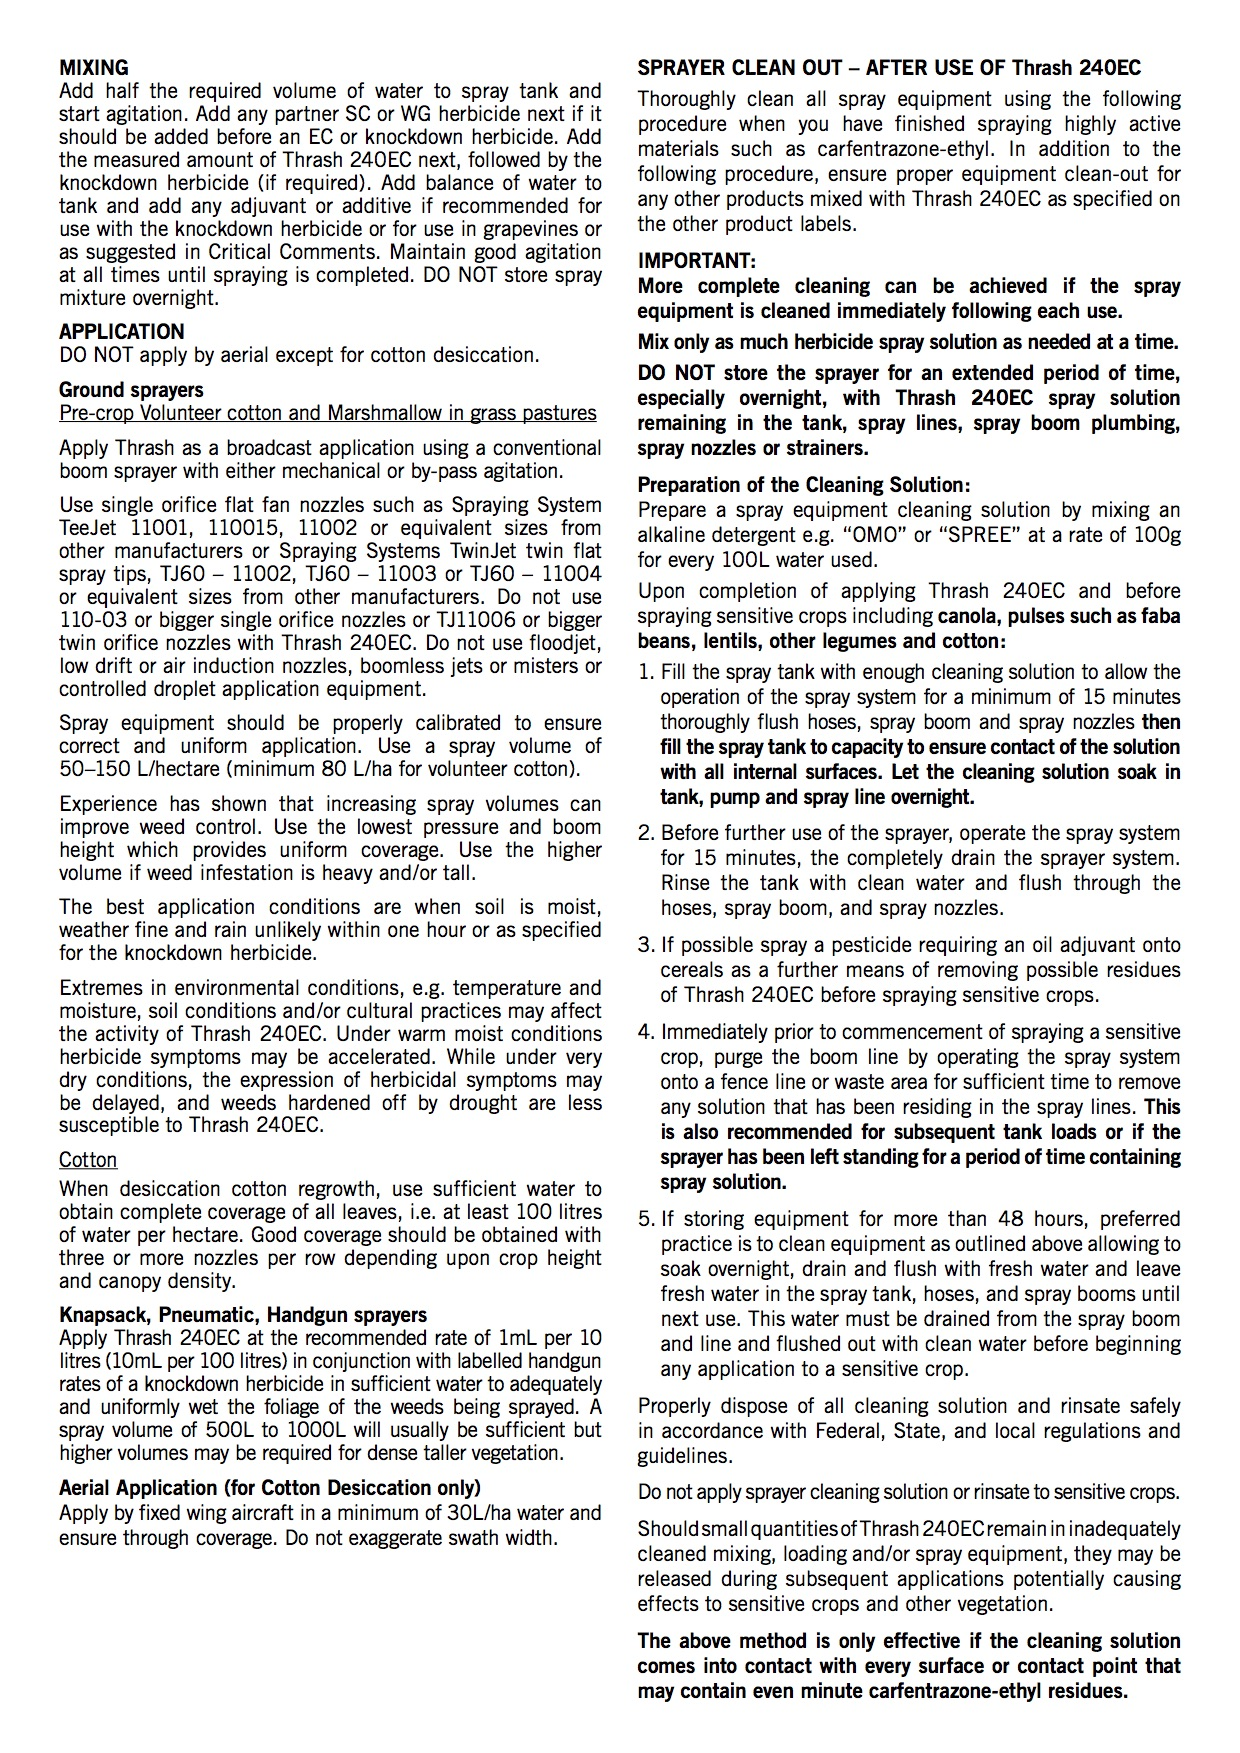 Trash240EC_WebLabel_0718 page 4 copy.jpg